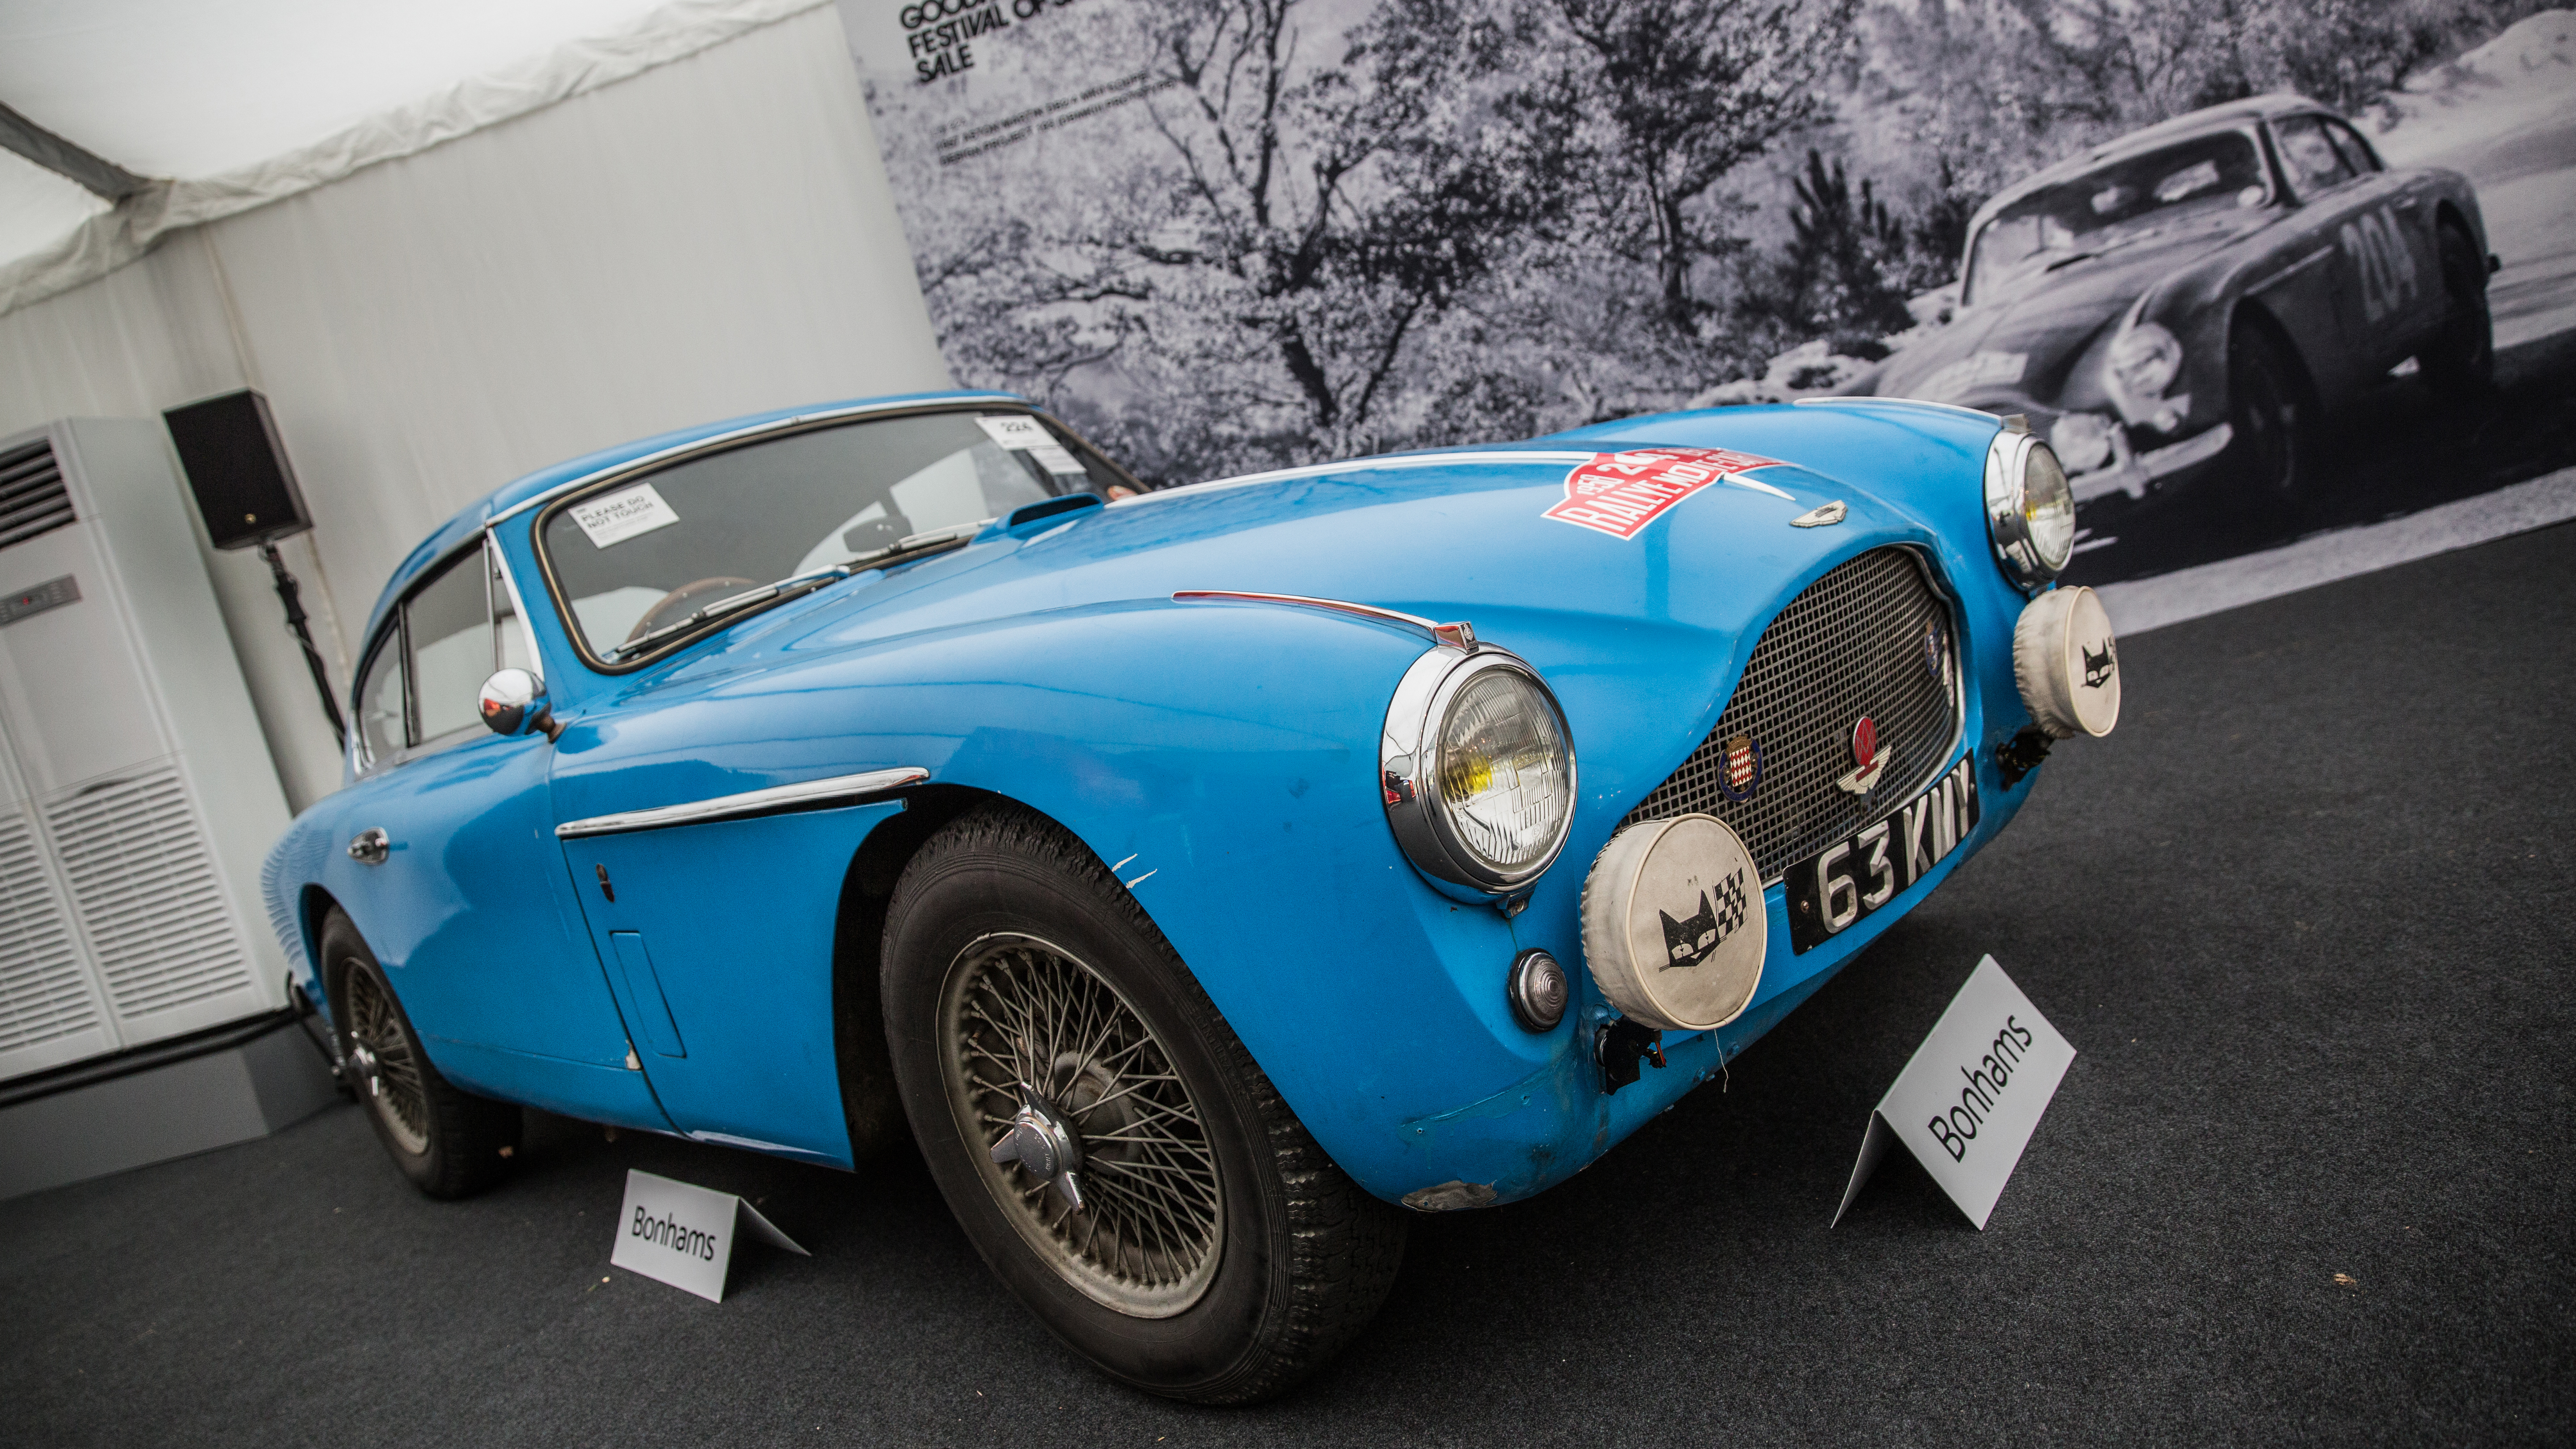 Top 20 most interesting cars at Bonhams' Festival of Speed auction